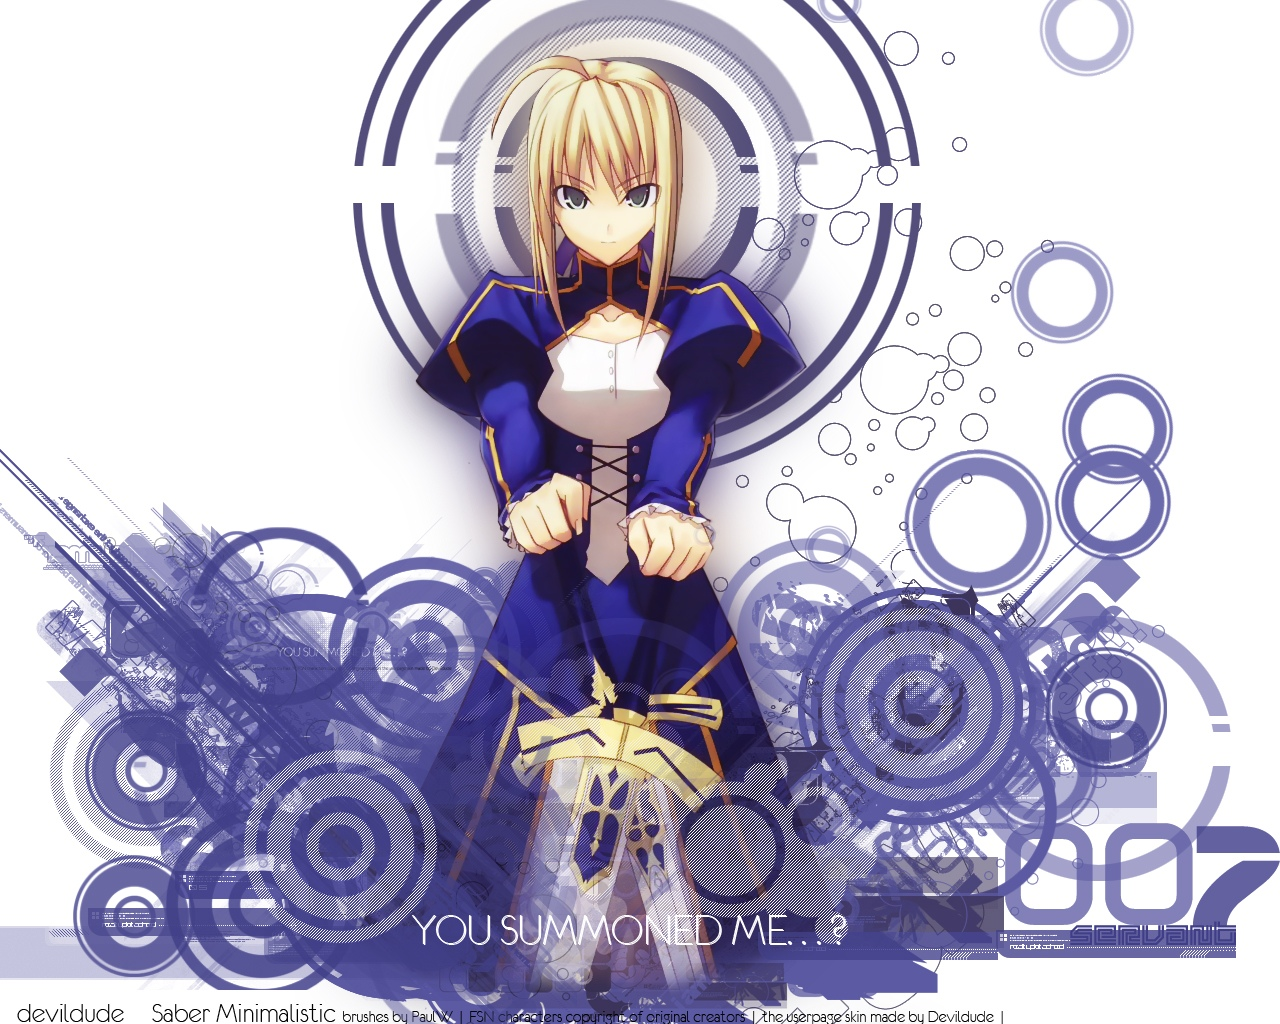 artoria_pendragon_(all) blonde_hair fate_(series) fate/stay_night saber shingo_(missing_link) sword weapon